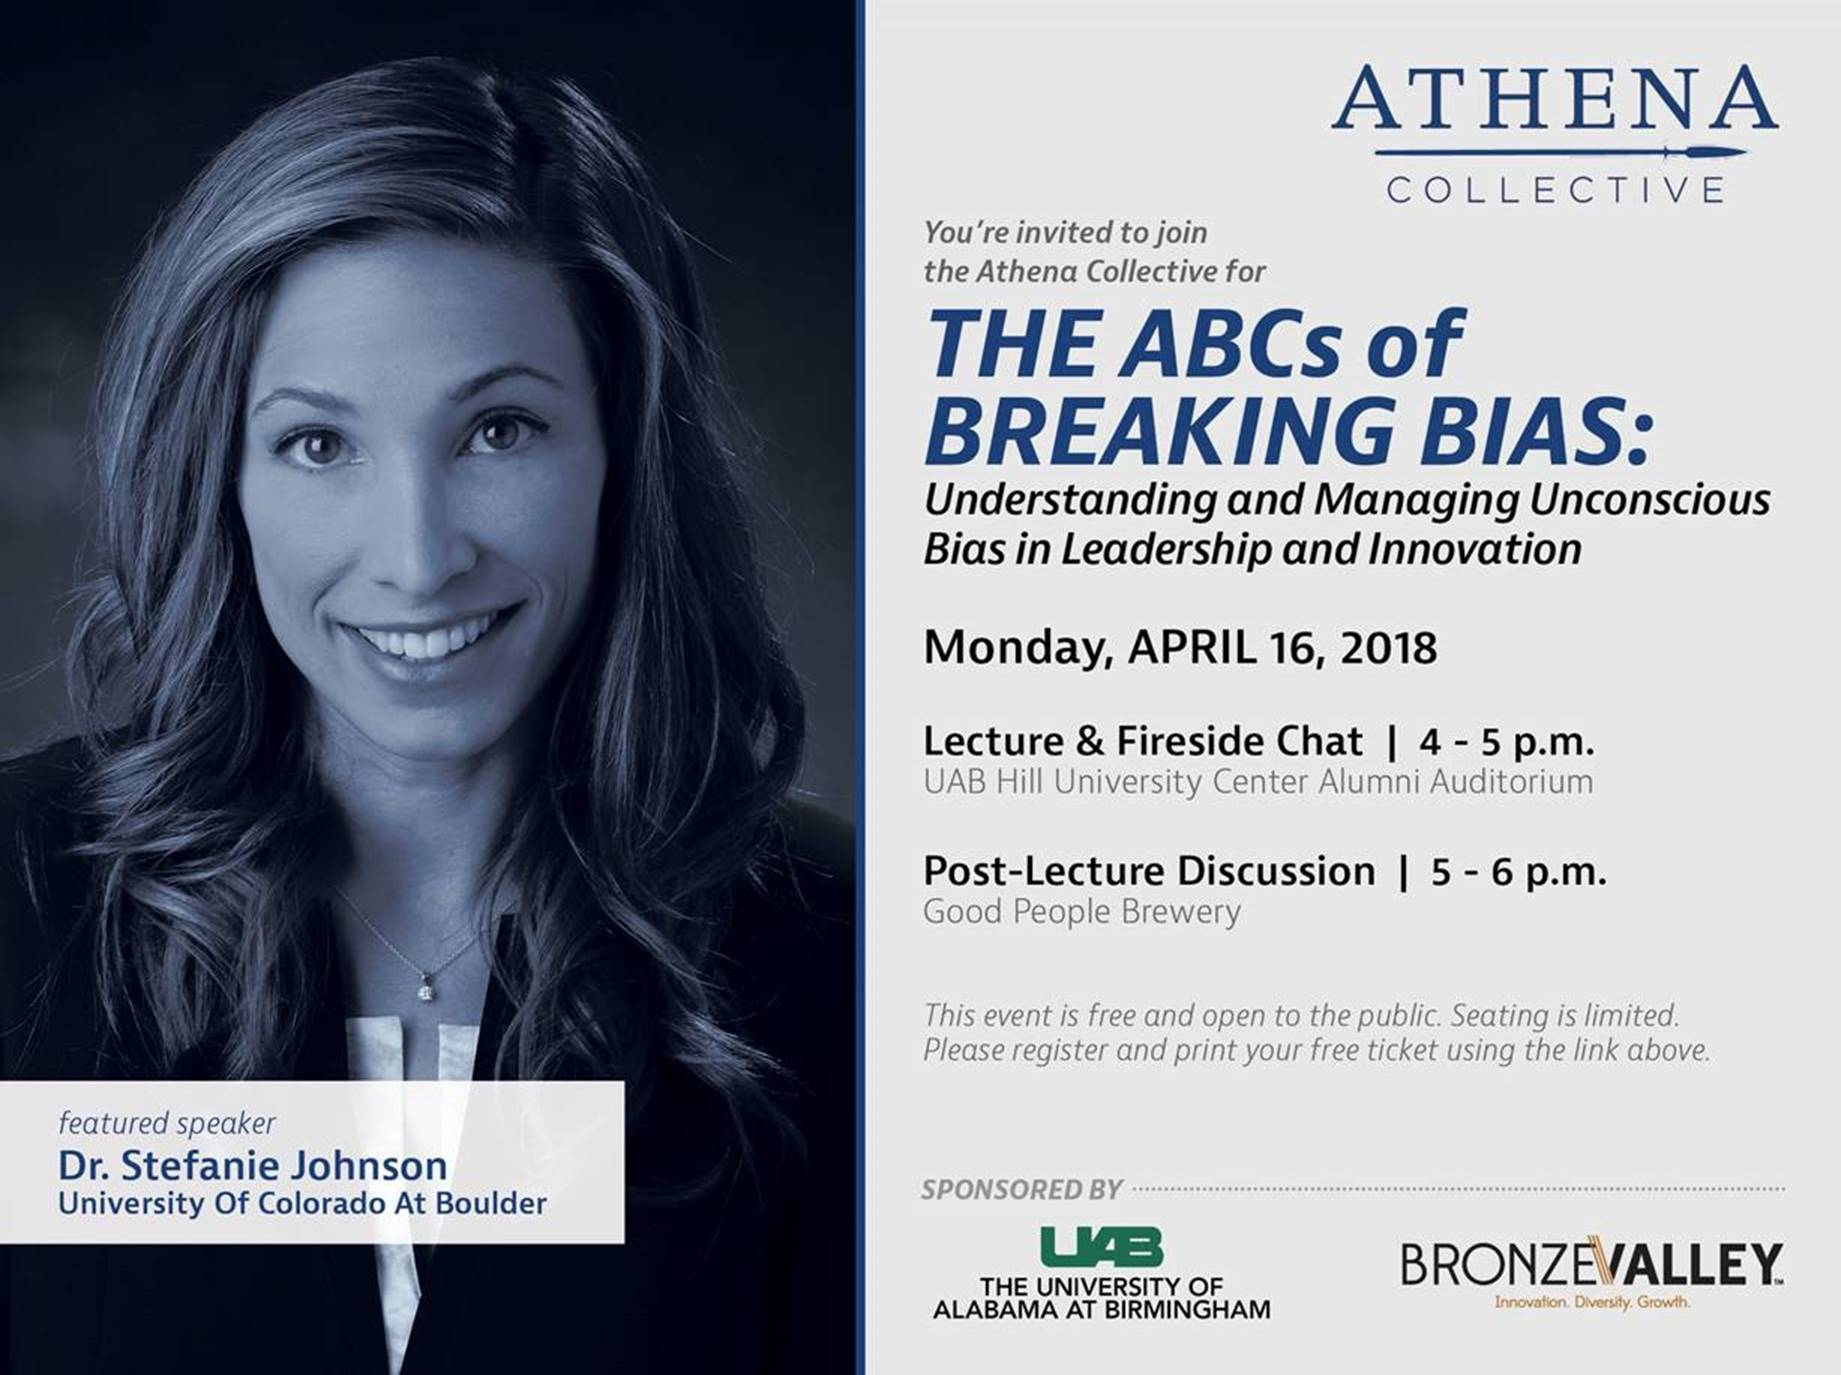 'Breaking Bias' improves organizational performance, says featured speaker at Birmingham event